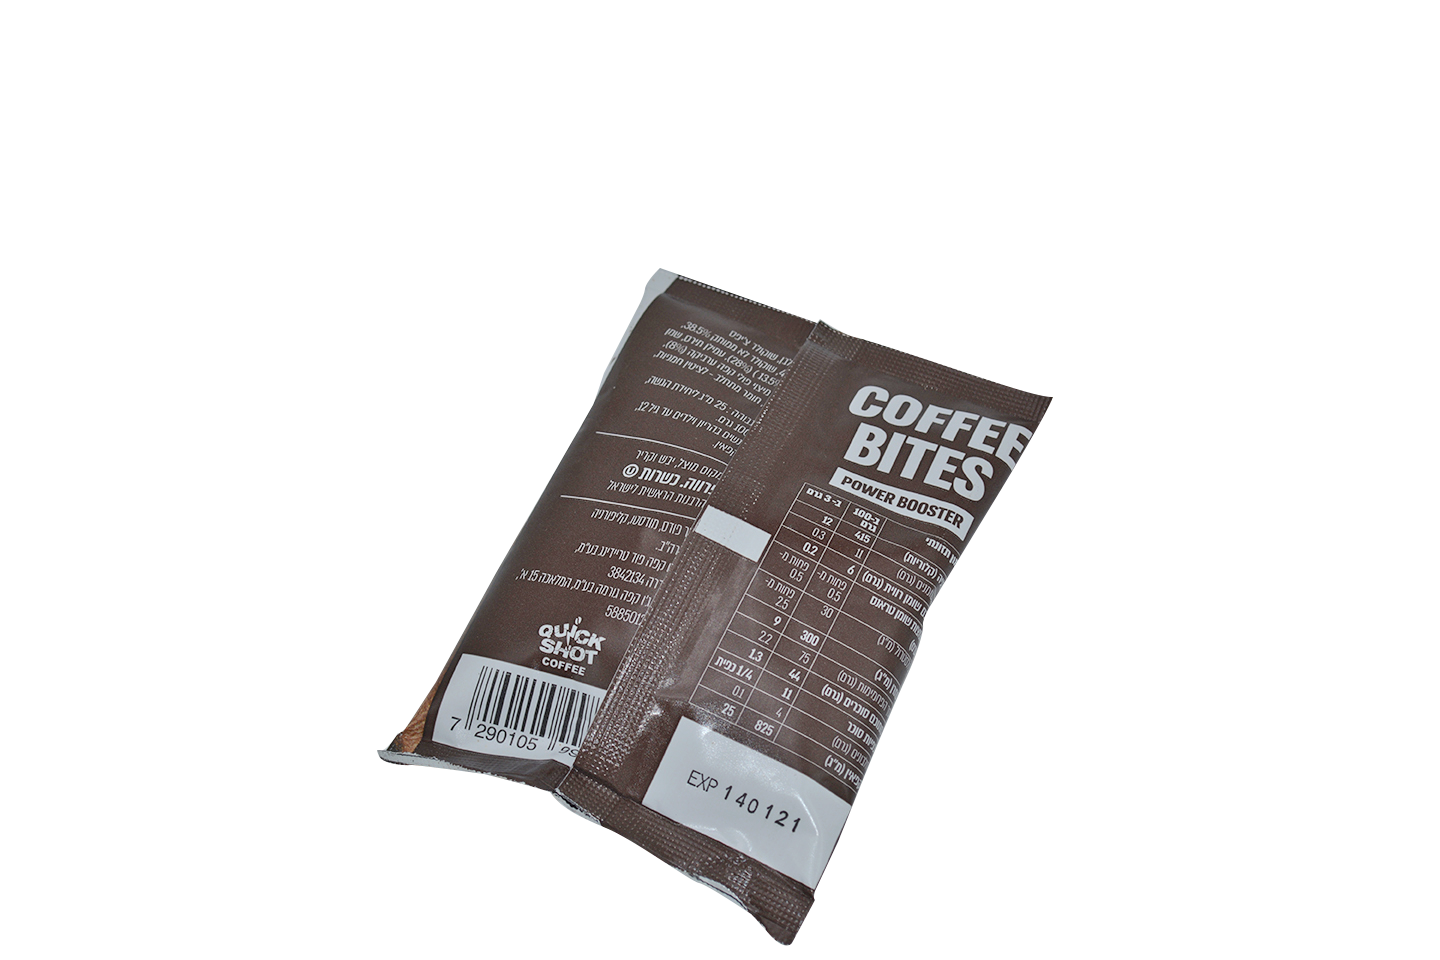 Coffee Bites Single Pack - A coffee and chocolate energy boost